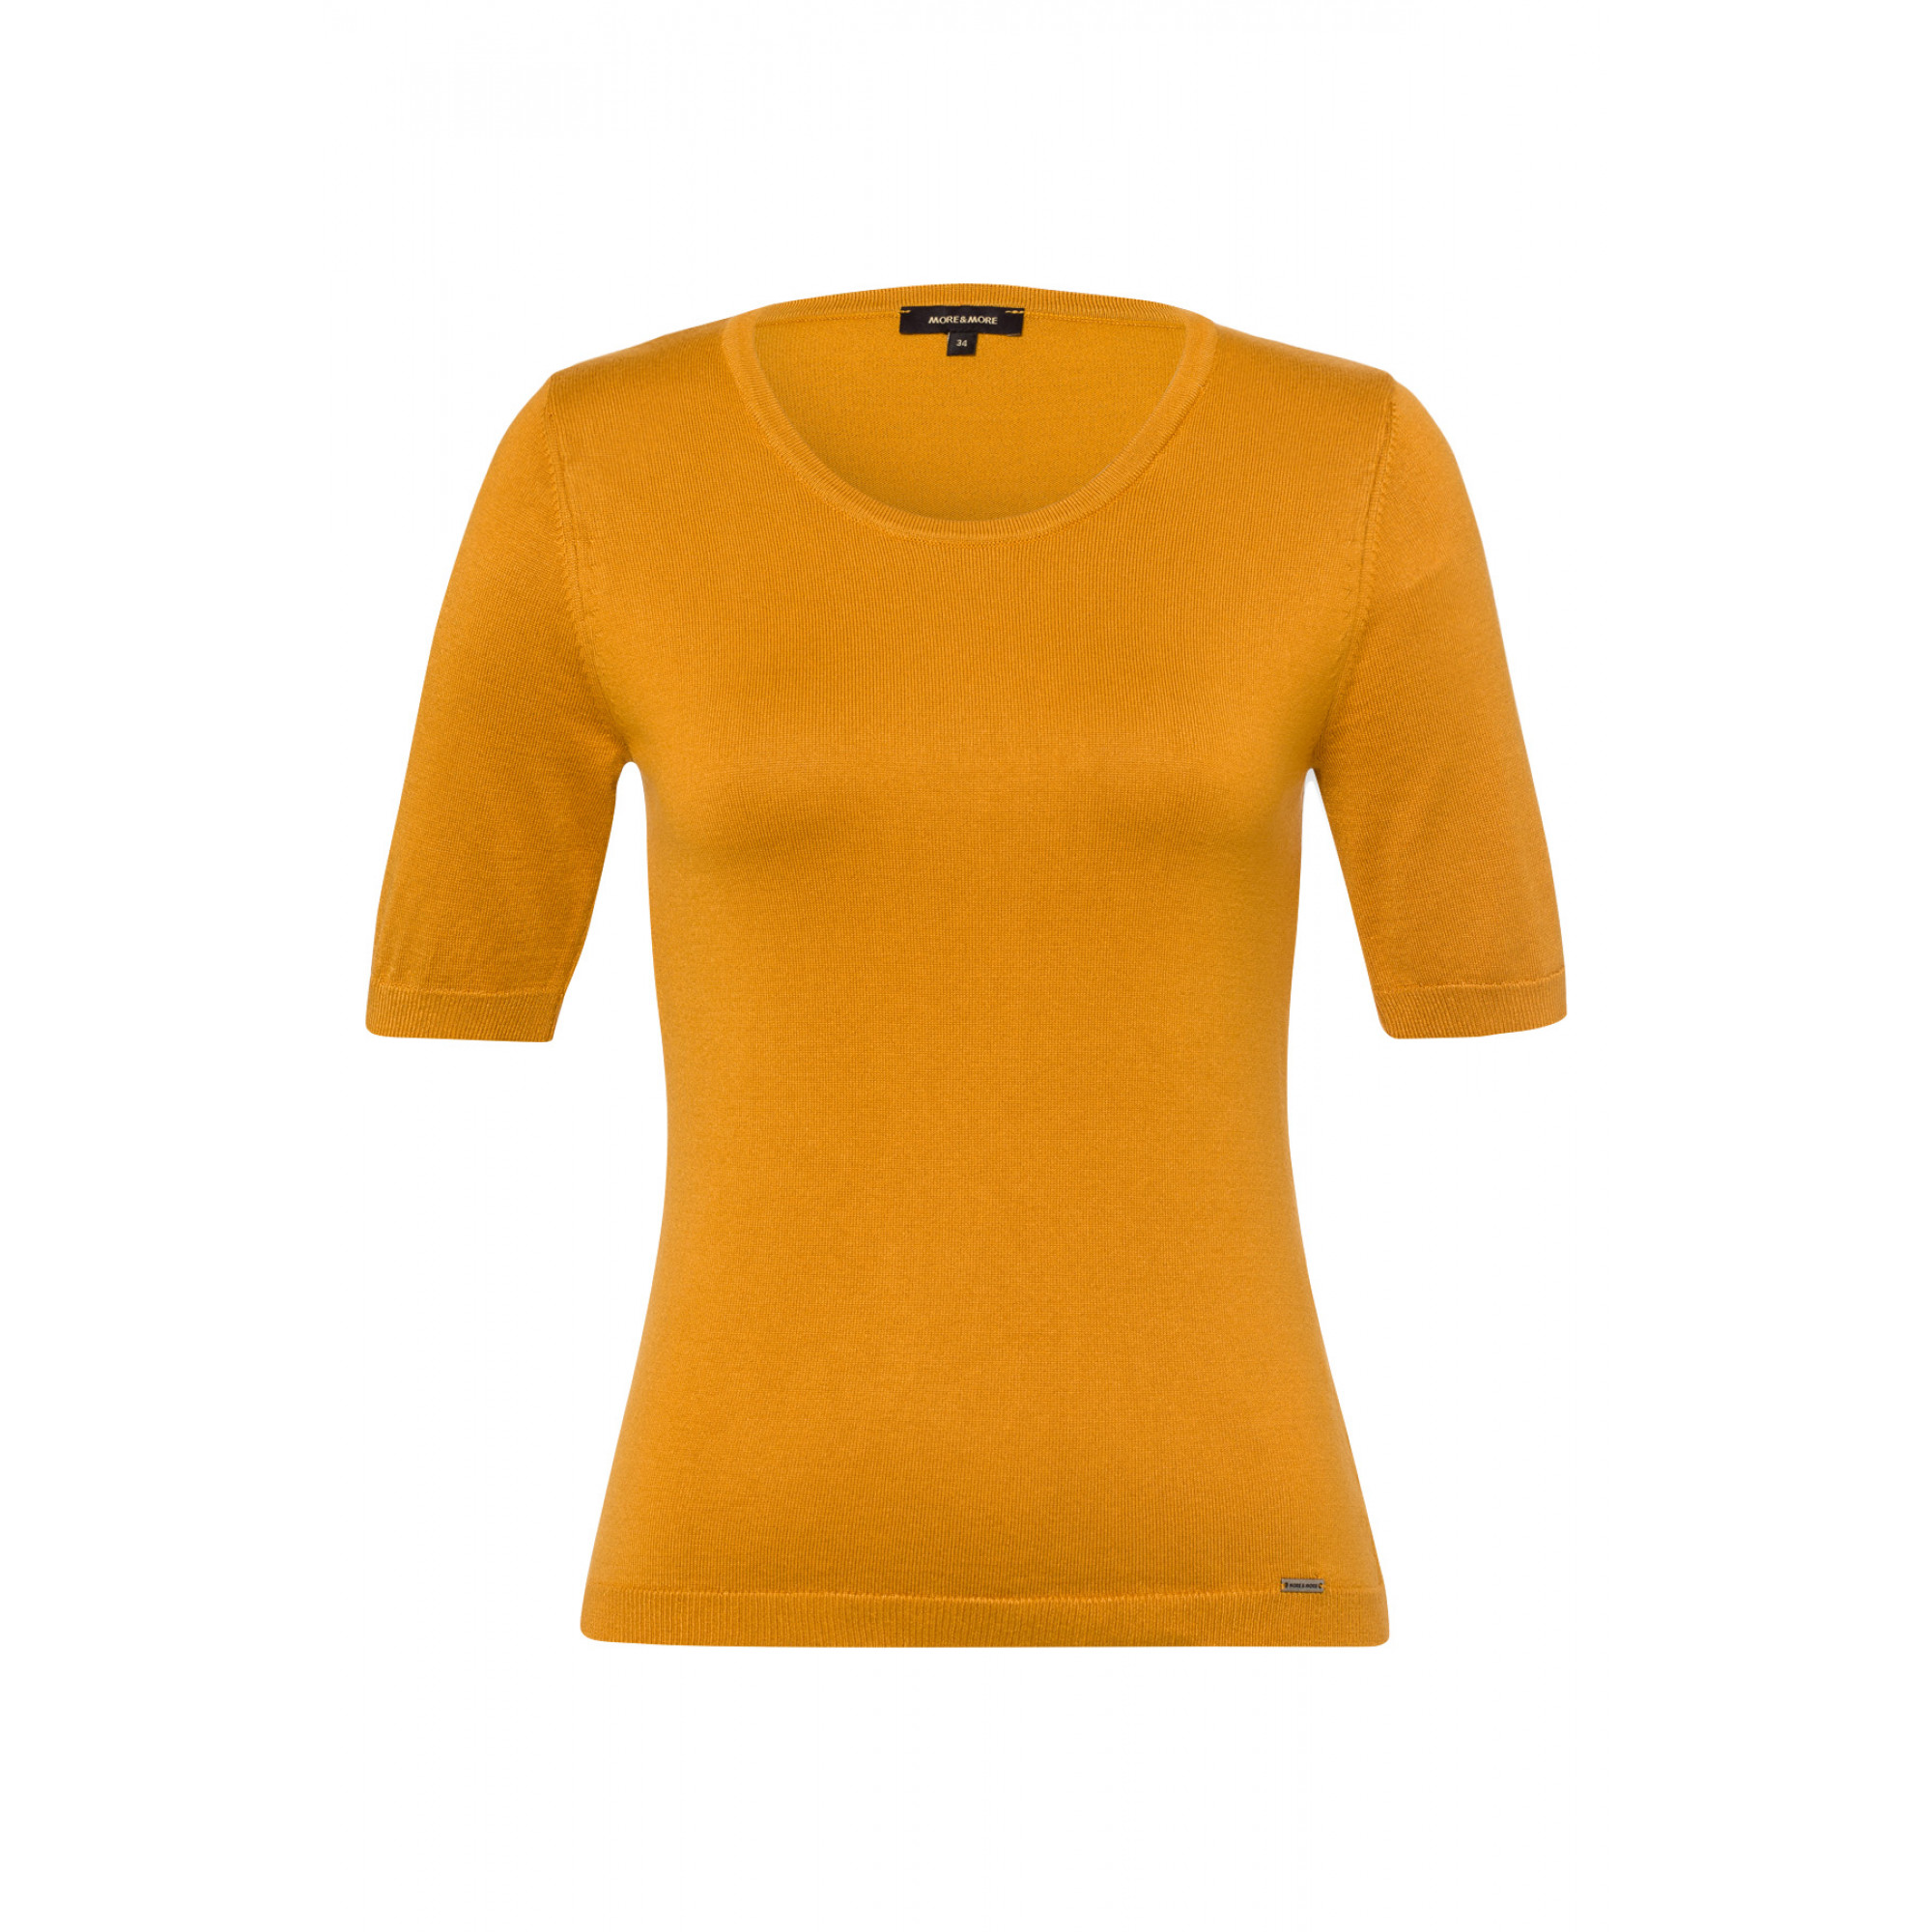 Feinstrick-Pullover, autumn yellow 91911513-0185 1